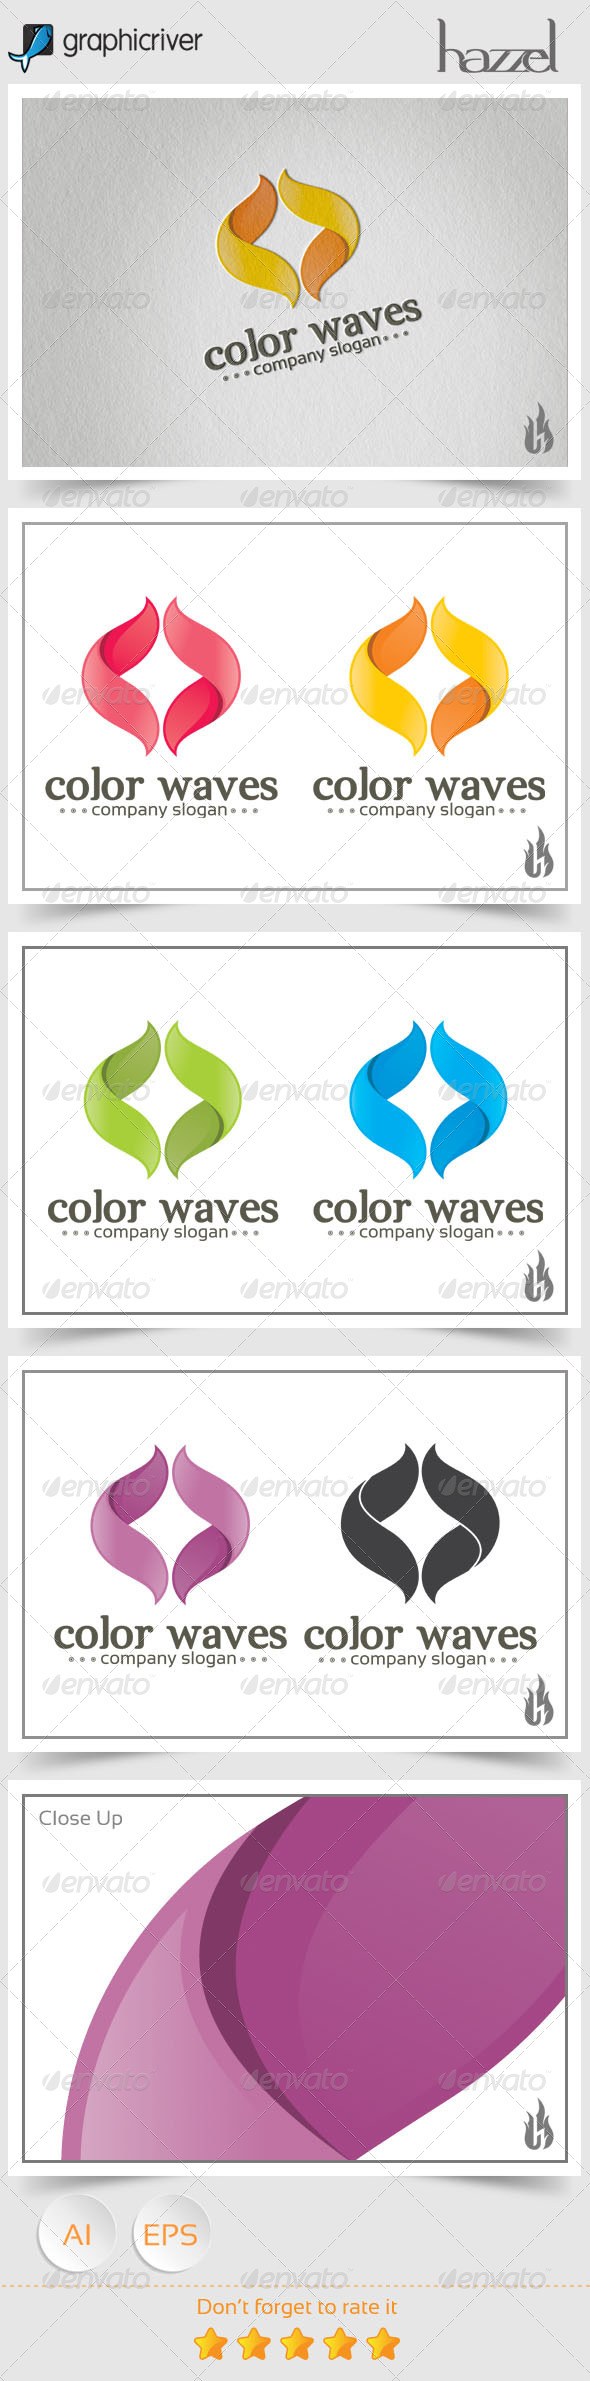 GraphicRiver Color Waves Logo 8536107